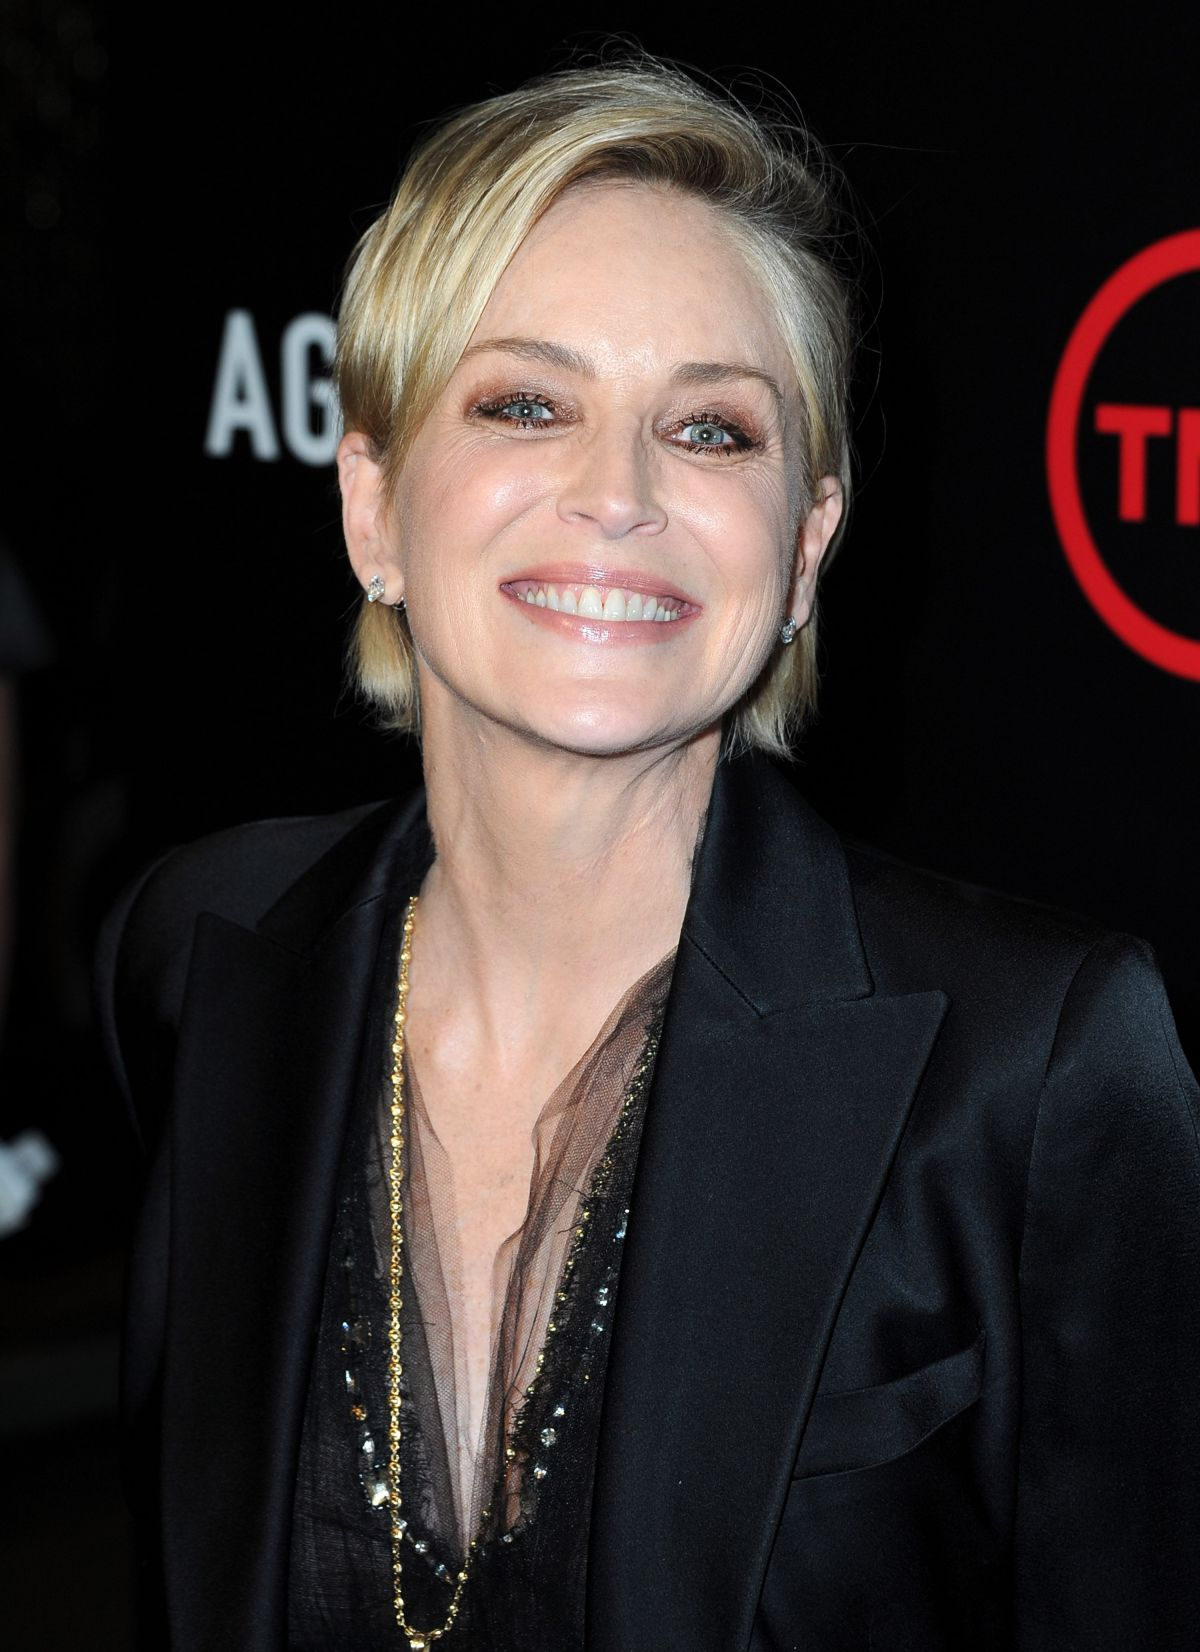 SHARON STONE at Agent X Premiere in West Hollywood 10/20/2015